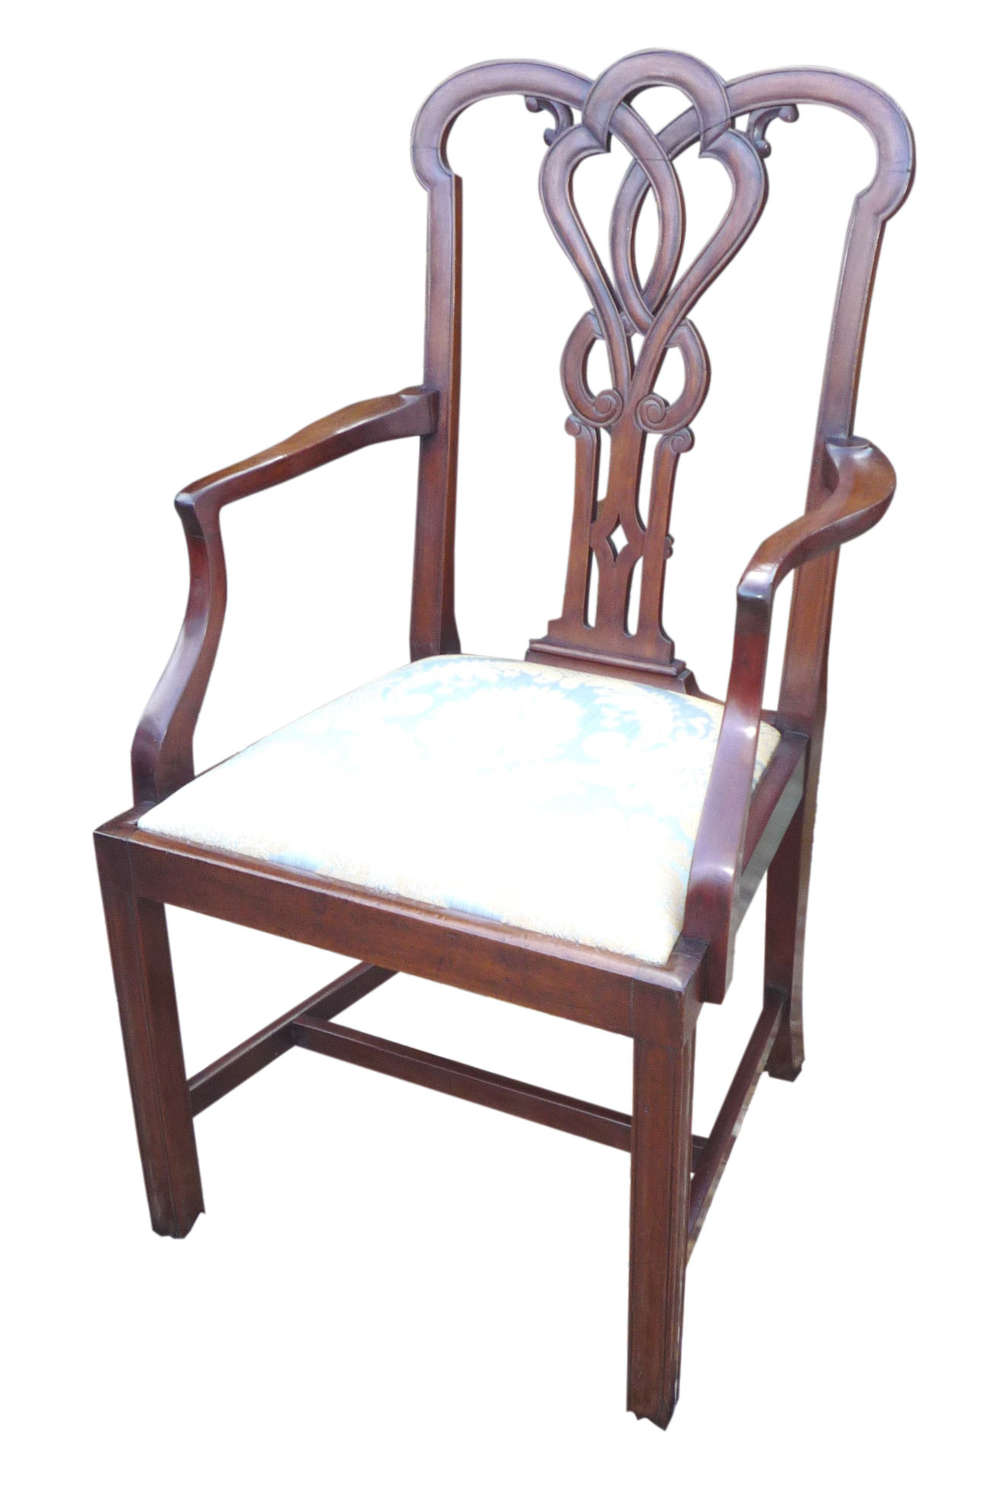 A Georgian style mahogany elbow chair circa 1860